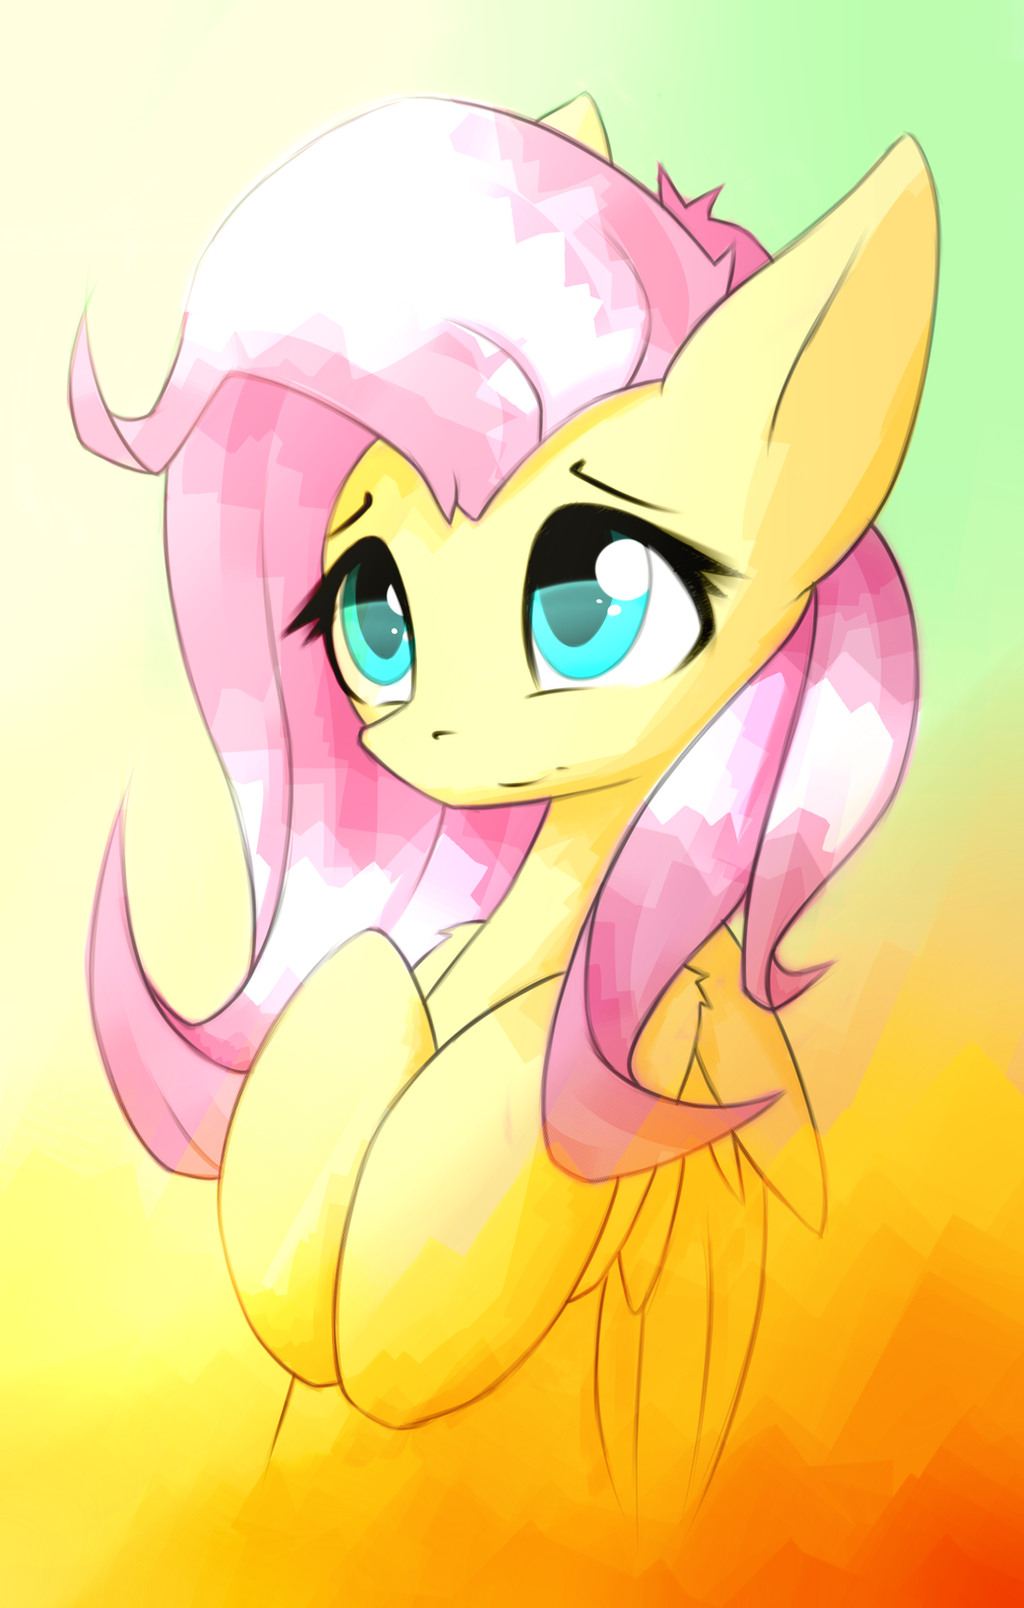 [Just] Fluttie by QueenBloodySky